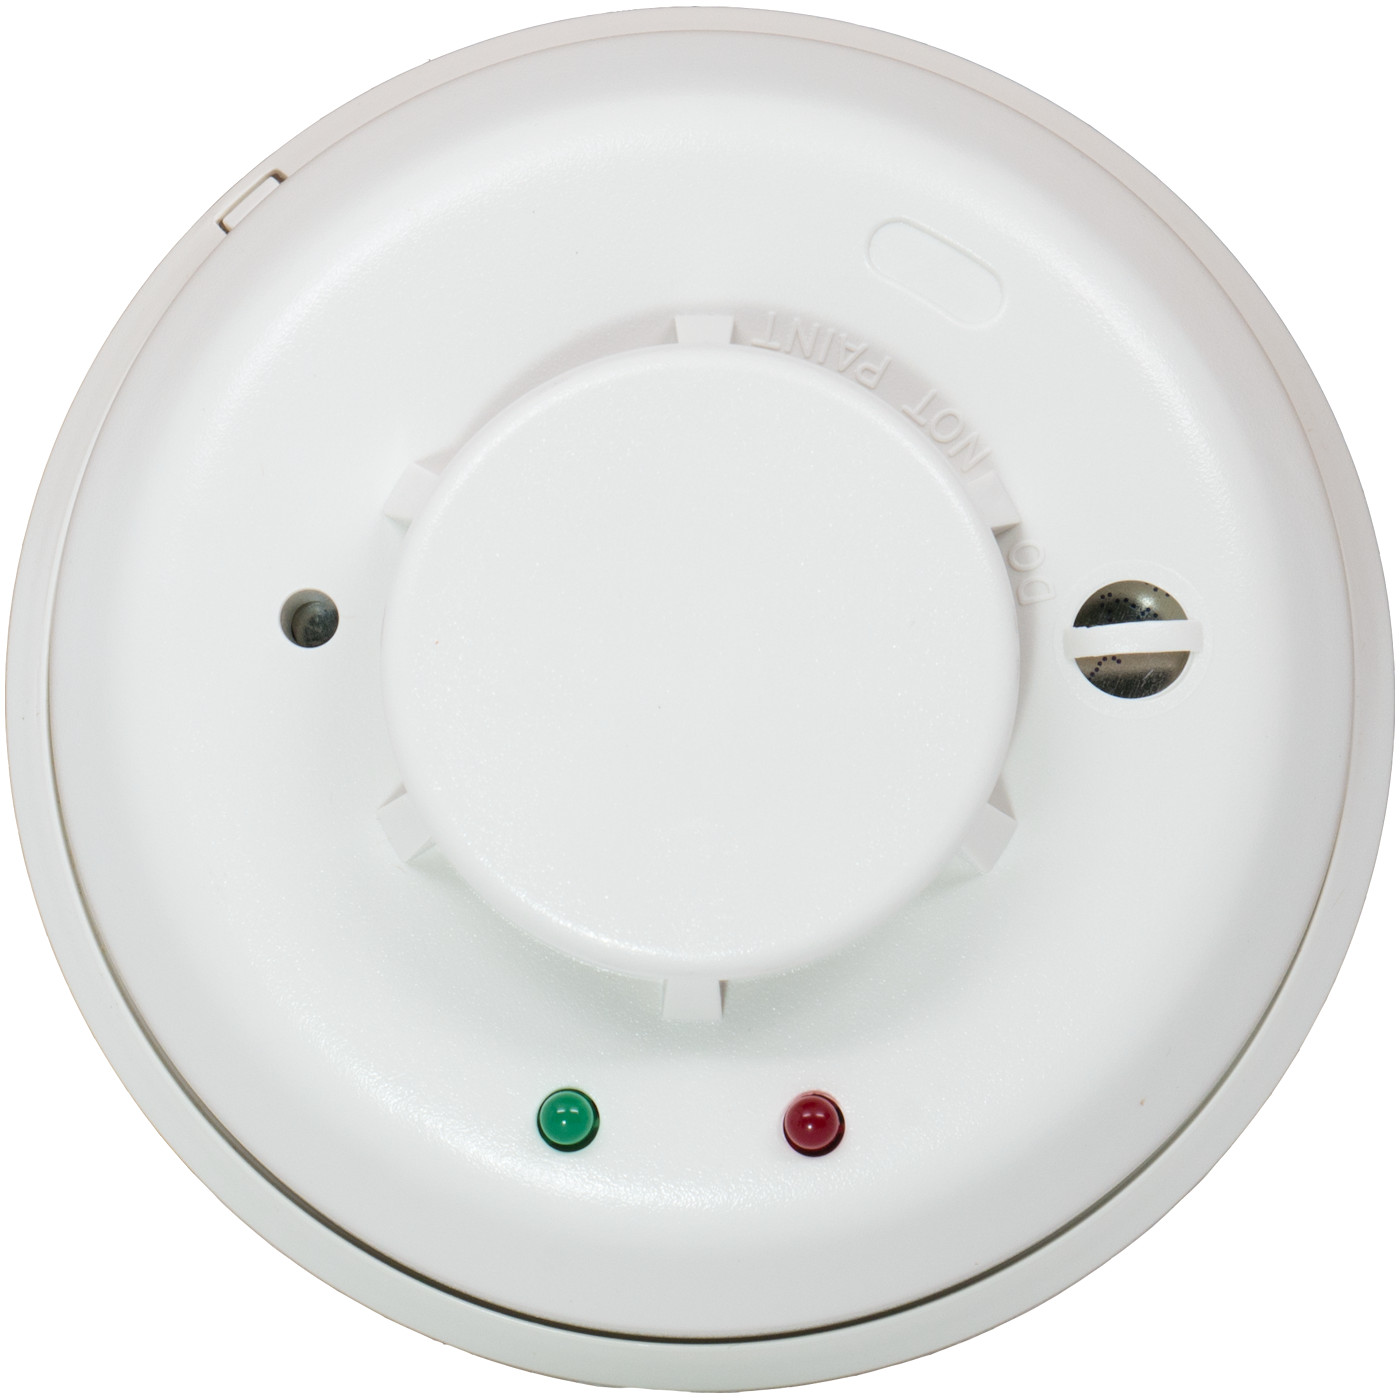 5808w3 honeywell wireless heat photoelectric smoke detector. Black Bedroom Furniture Sets. Home Design Ideas